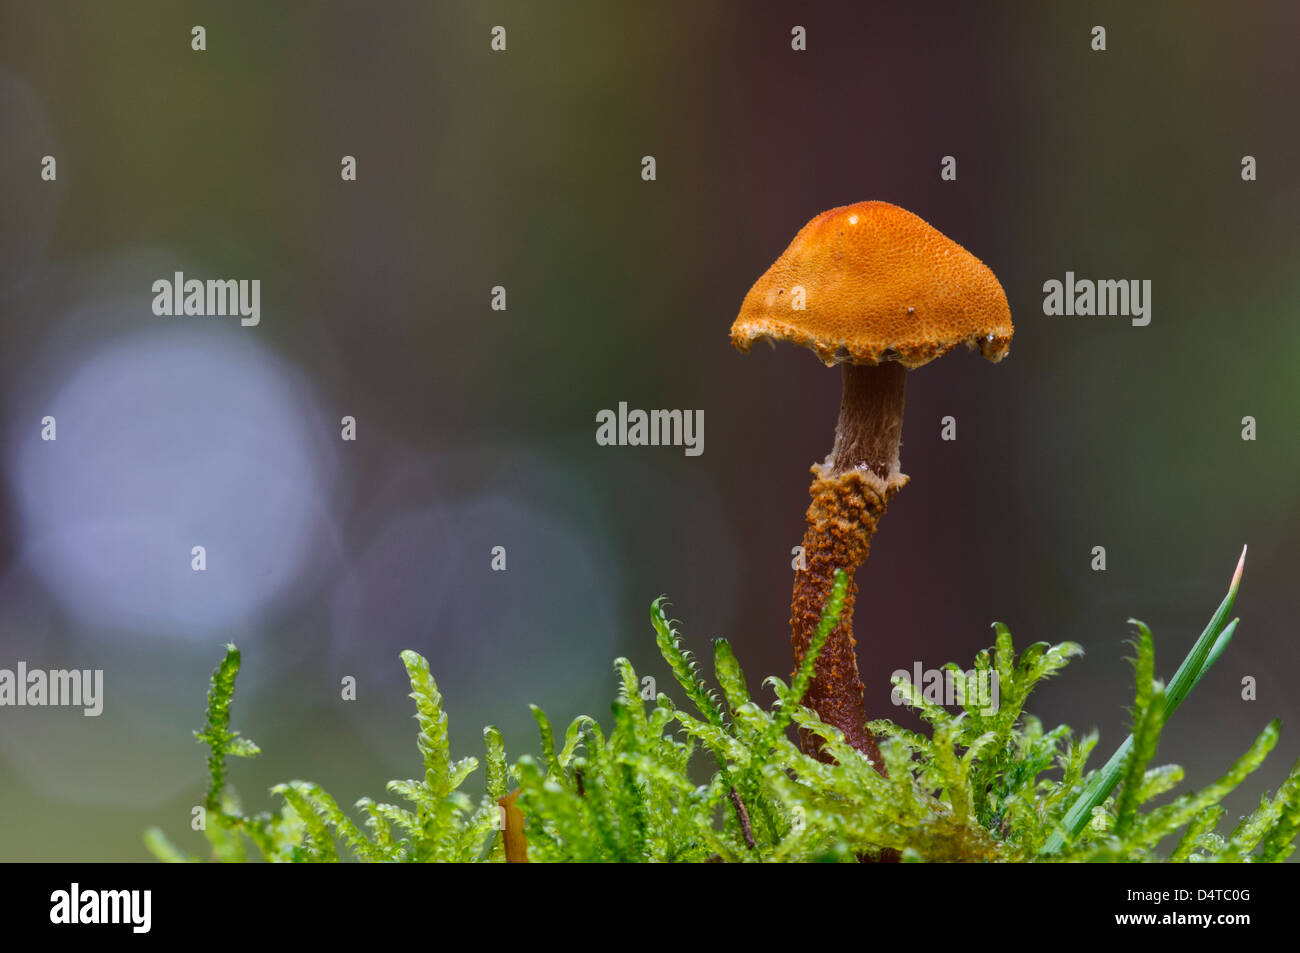 An earthy powdercap (Cystoderma amianthinum) growing amid fronds of moss in Clumber Park, Nottinghamshire. October. - Stock Image